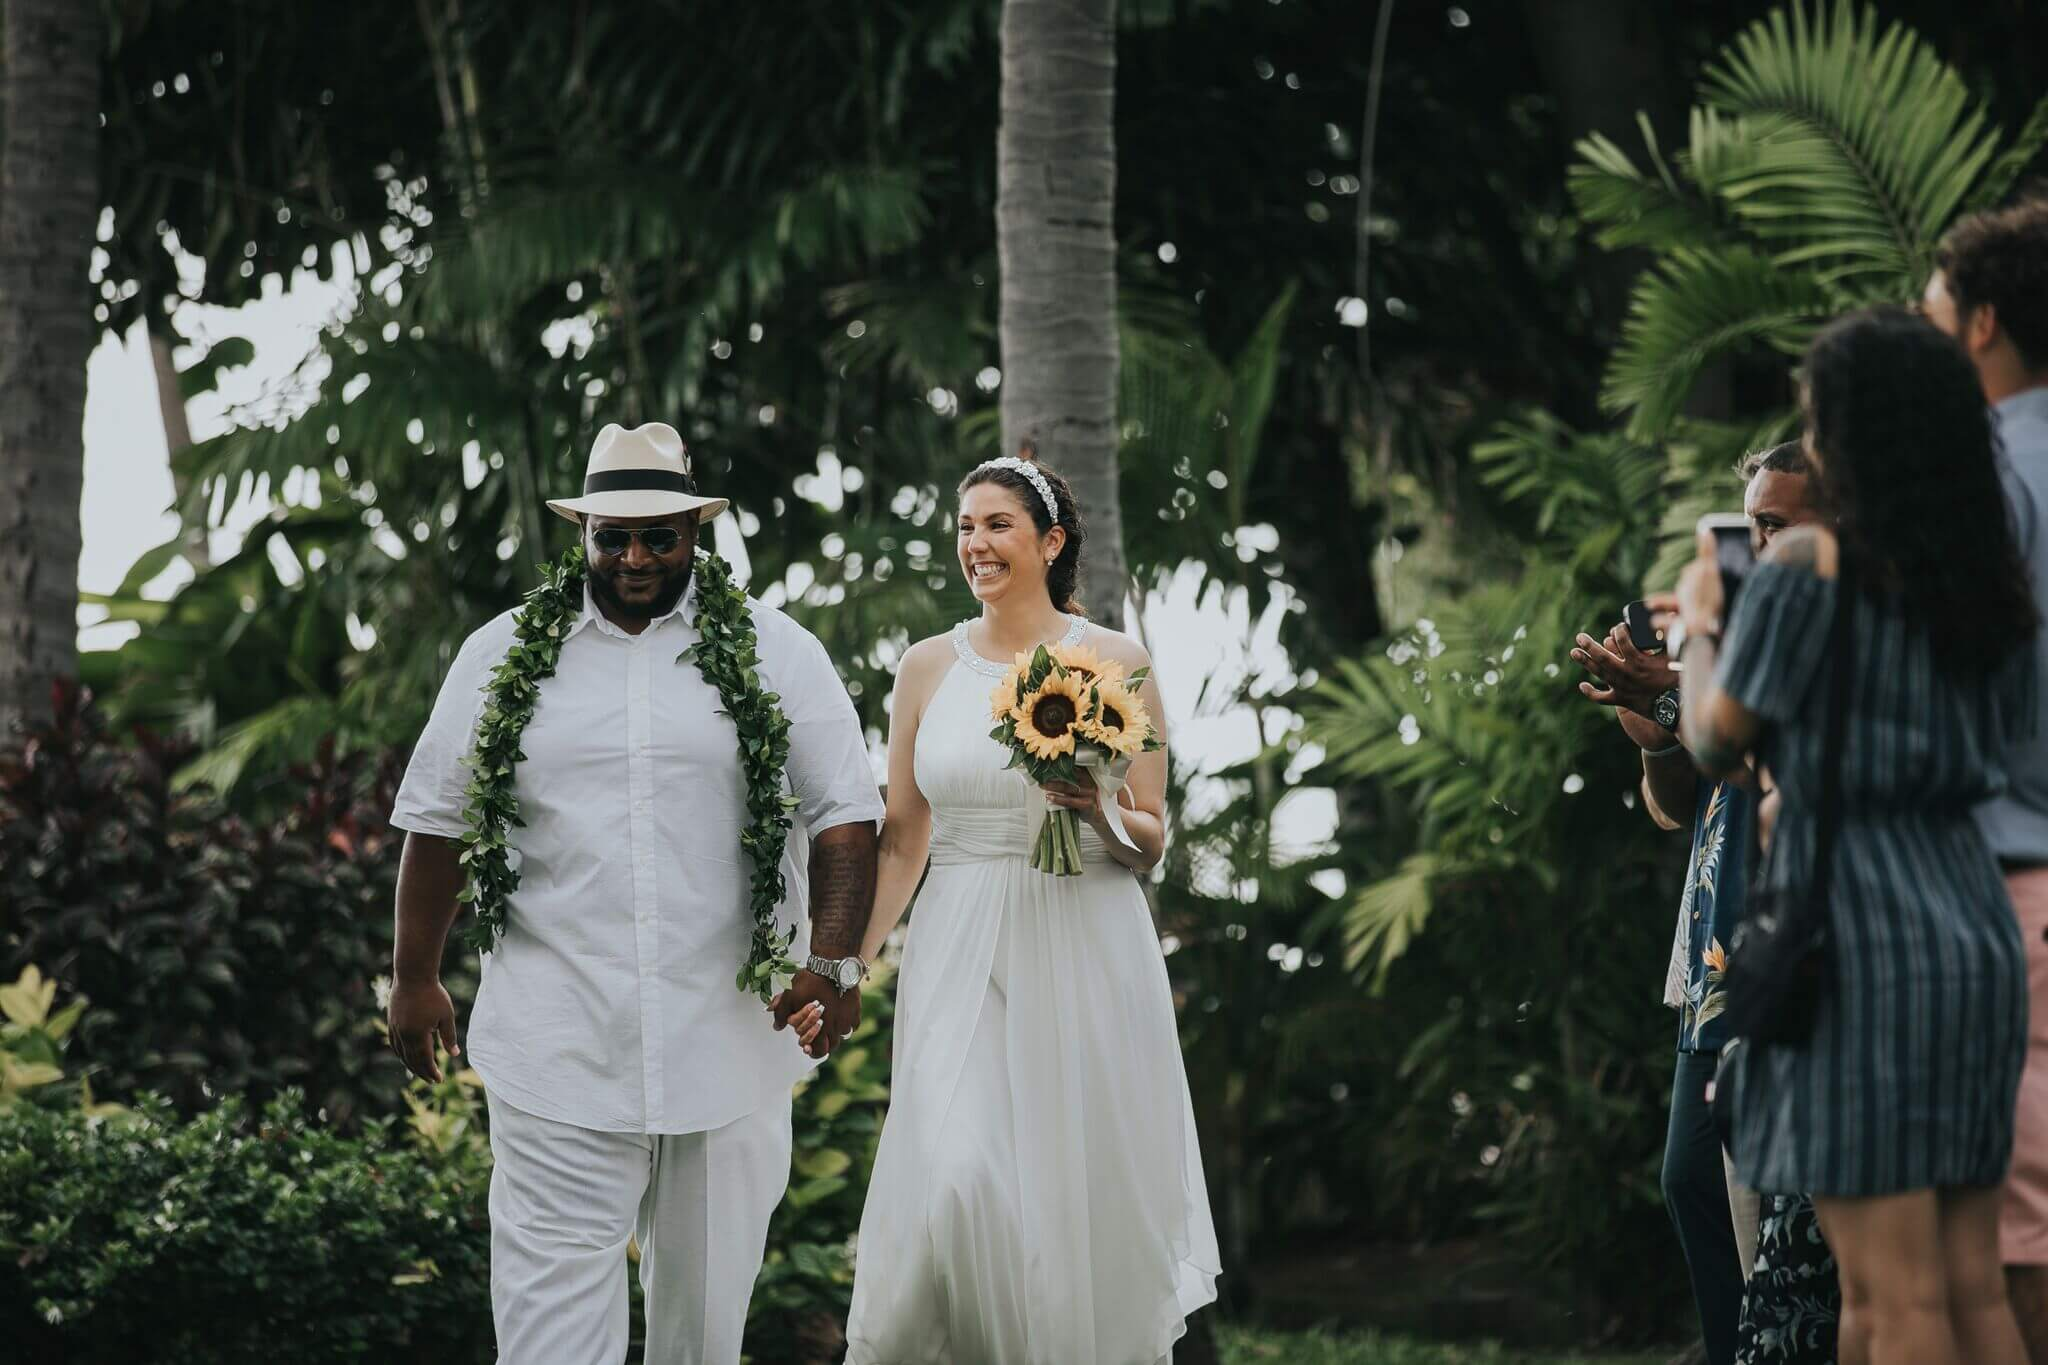 https://www.islanderweddings.com